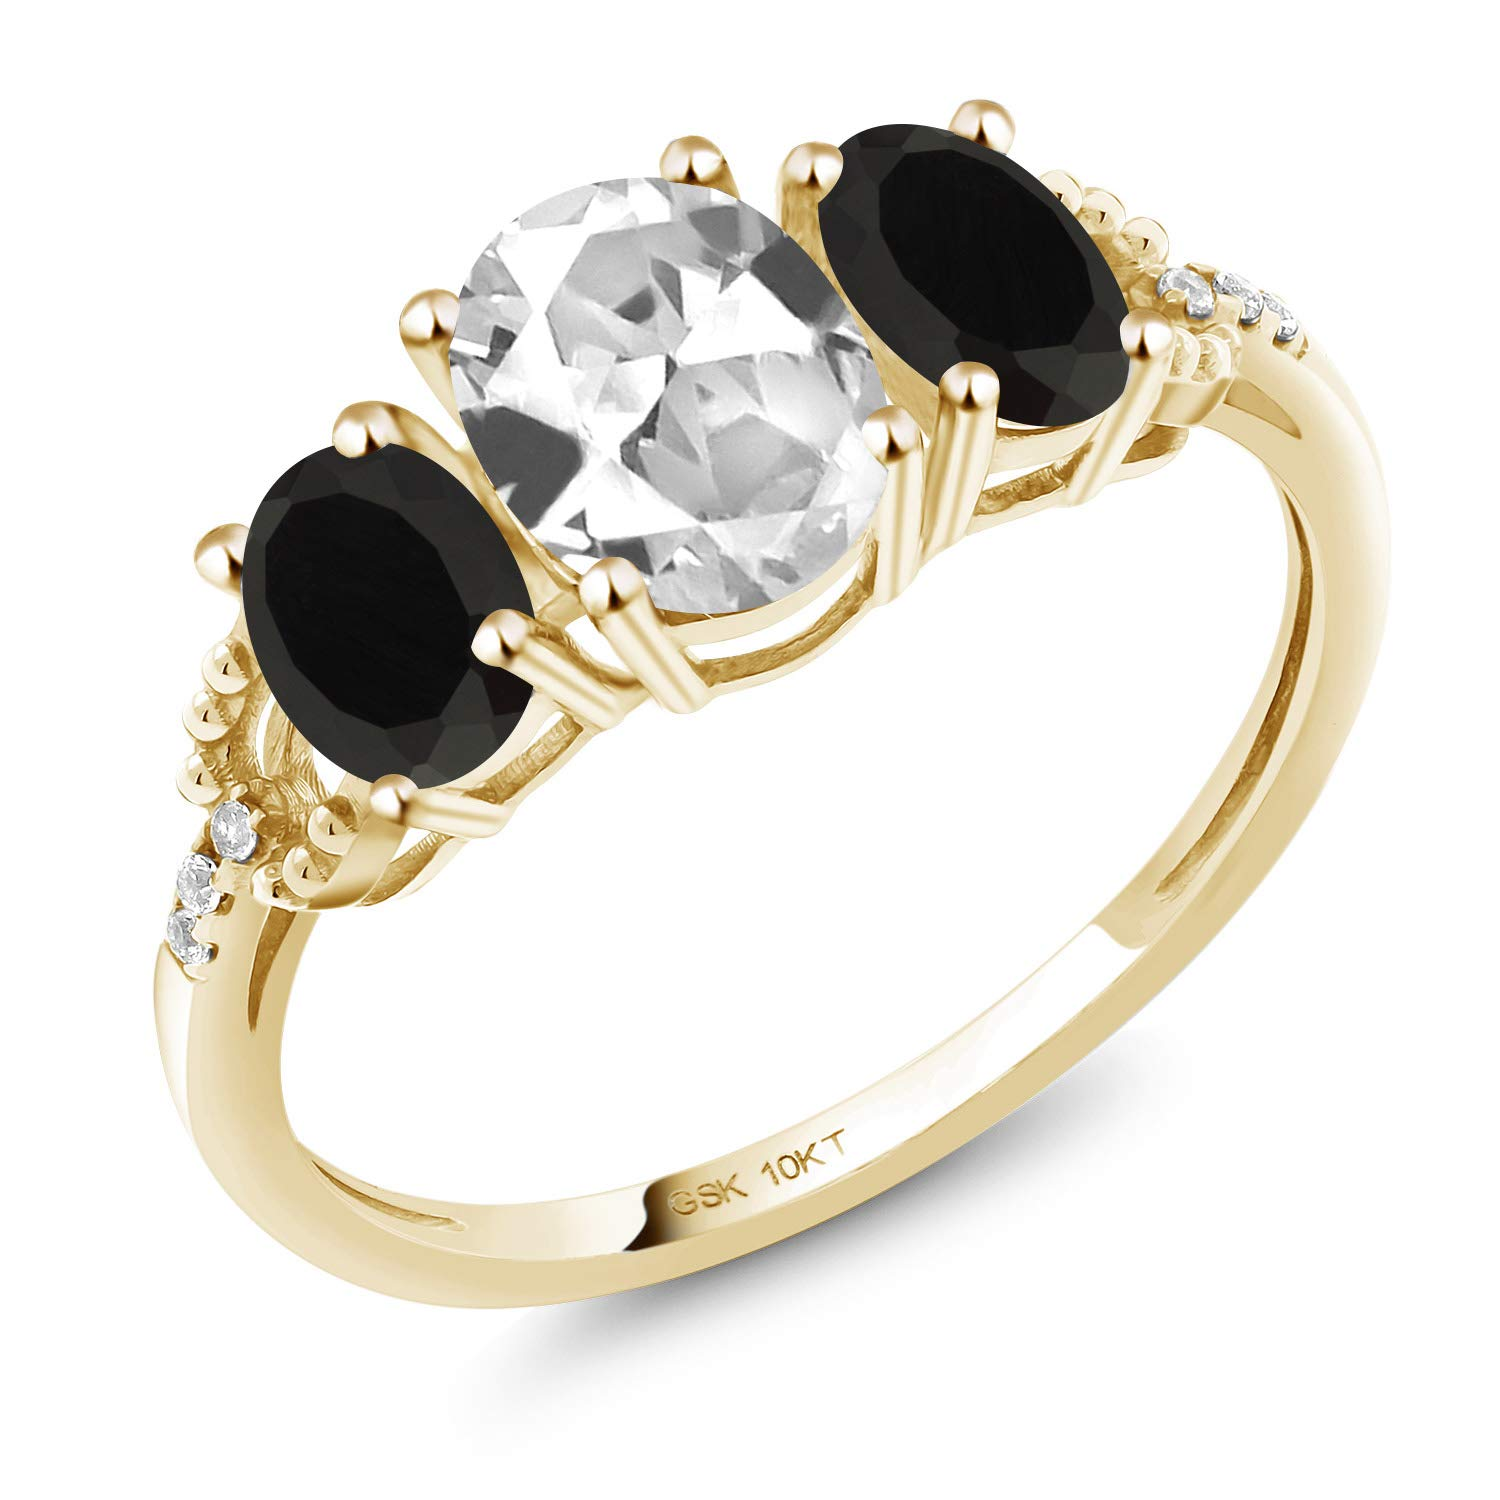 Gem Stone King 10K Yellow Gold Engagement Ring 1.82 Ct Oval White Created Sapphire Black Onyx